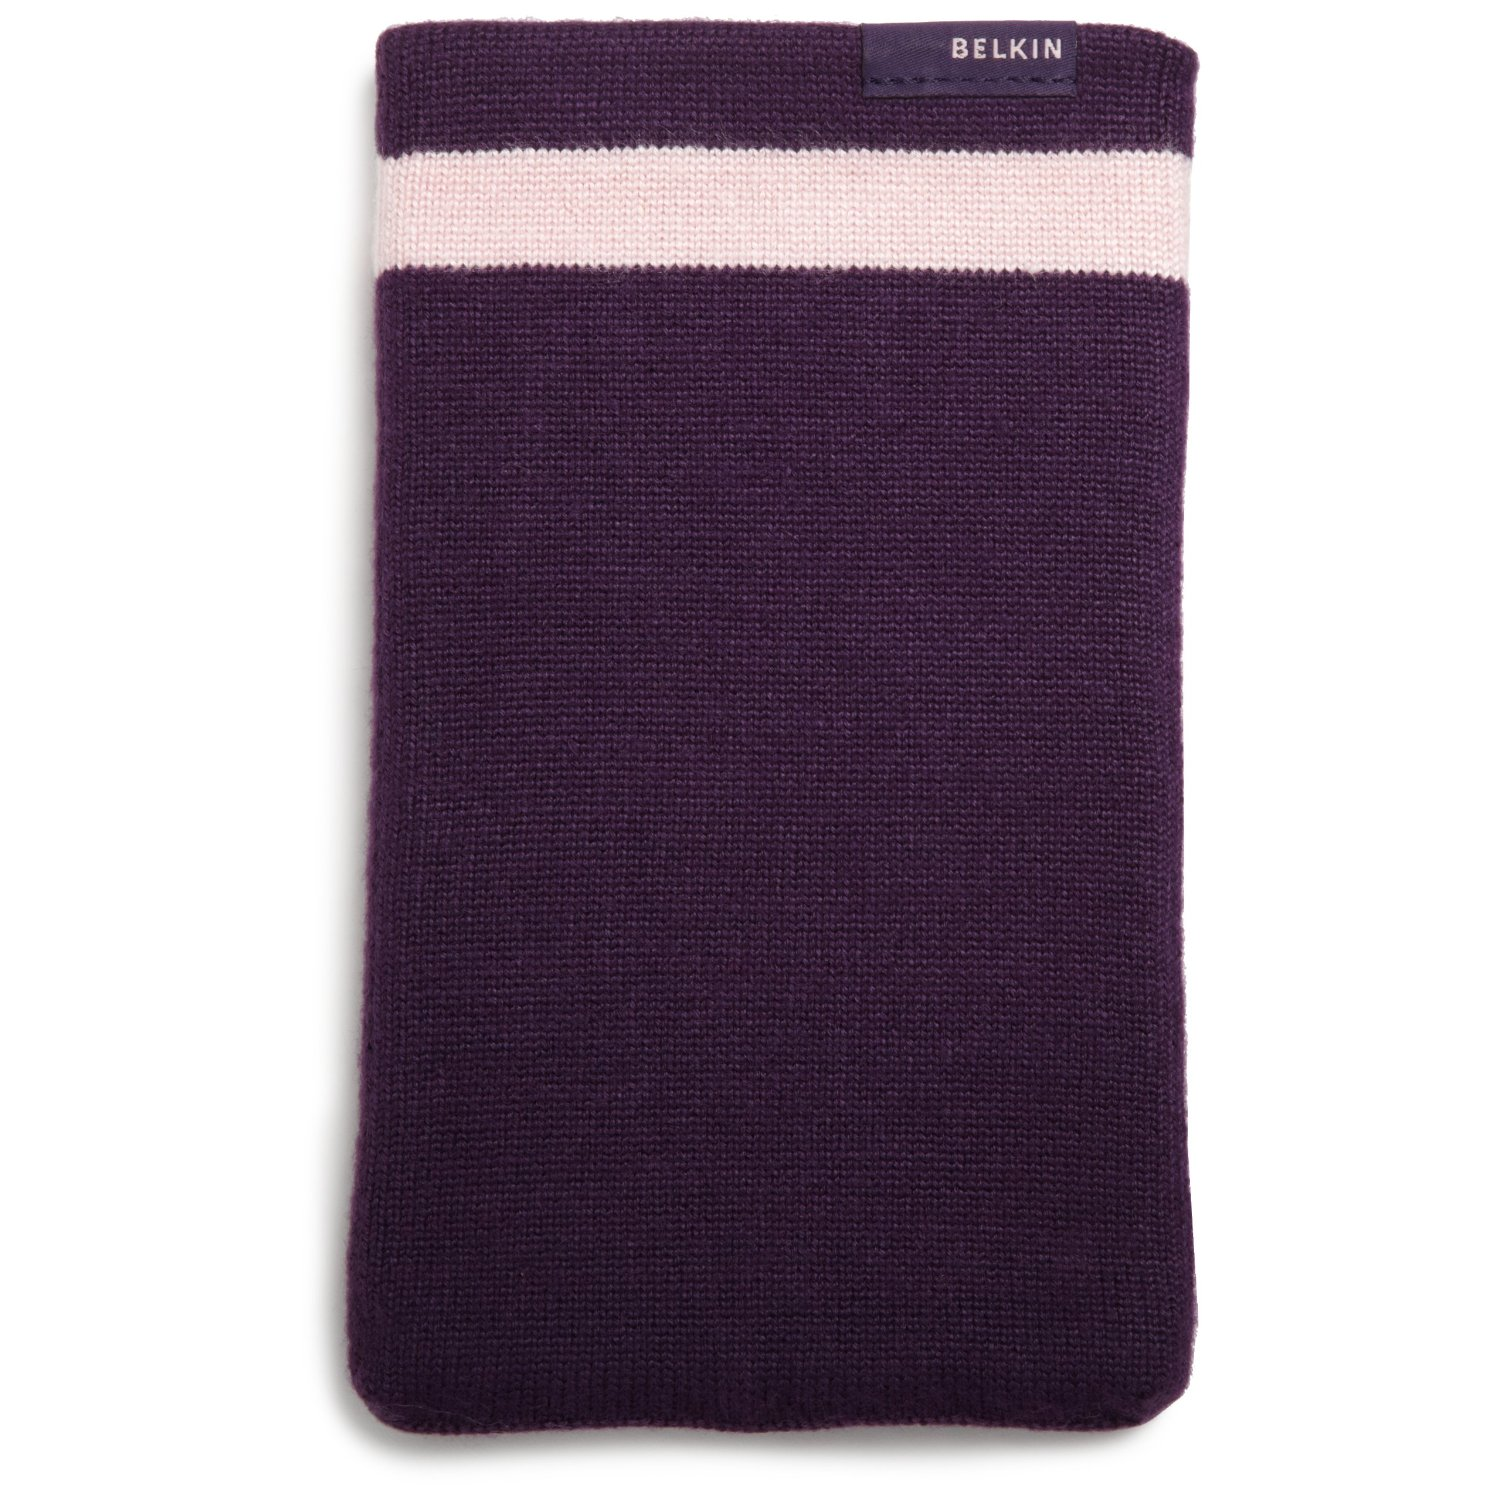 Husa Belkin Knit pentru Kindle Keyboard eBook Reader (violet)